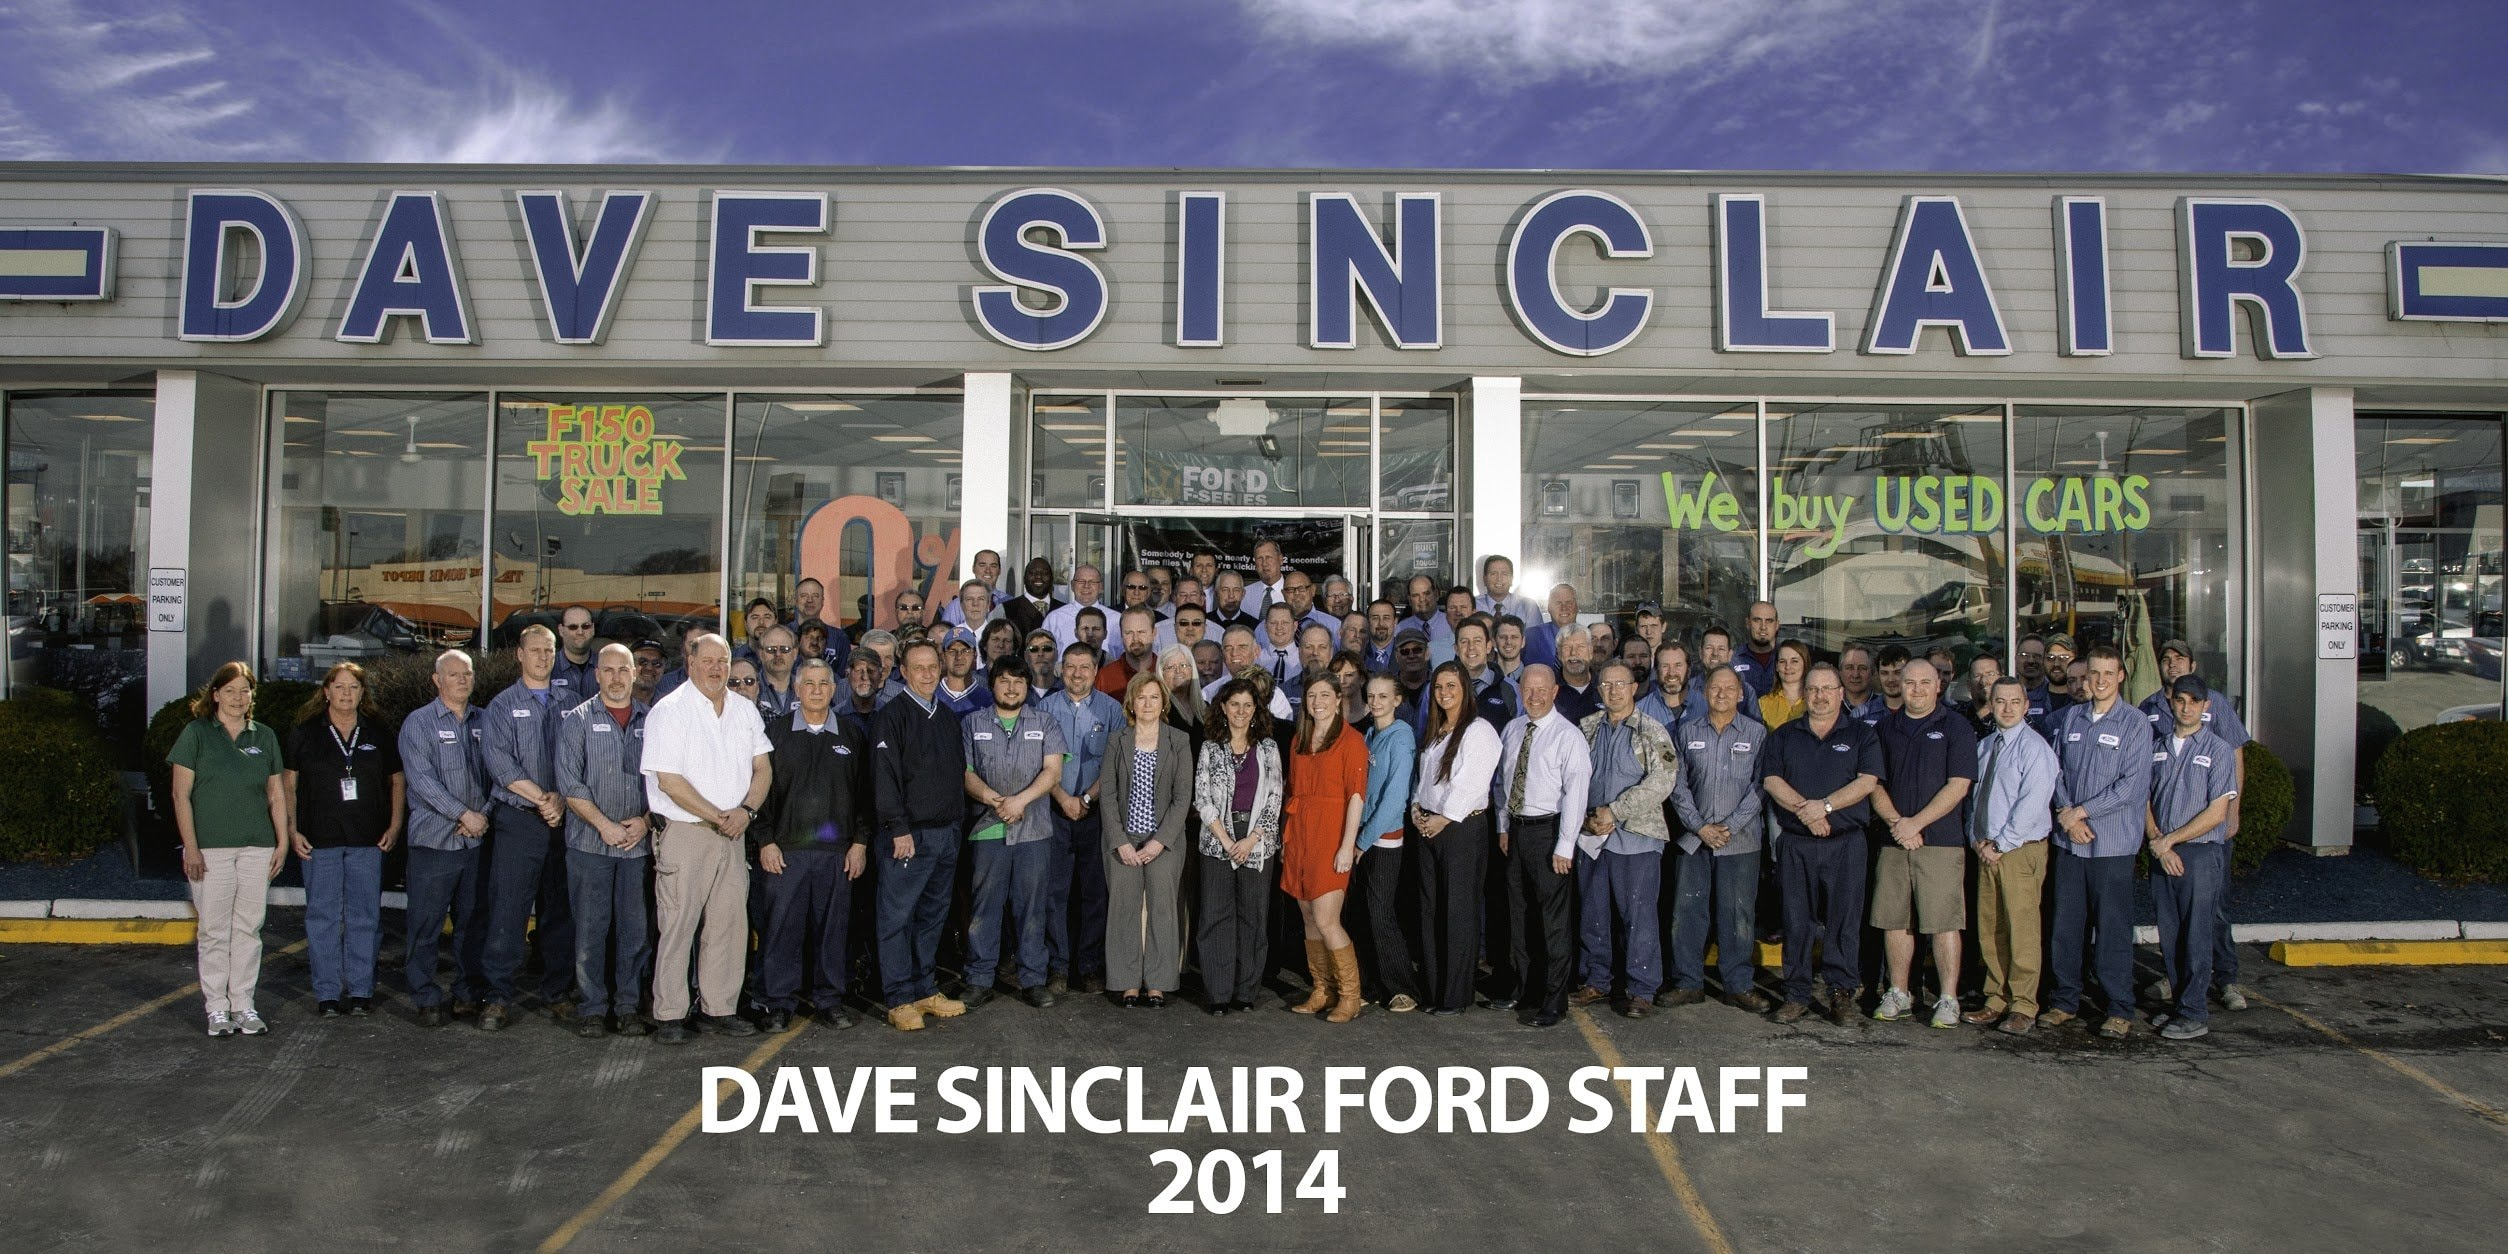 Dave Sinclair Ford Dealership Near Chesterfield Missouri